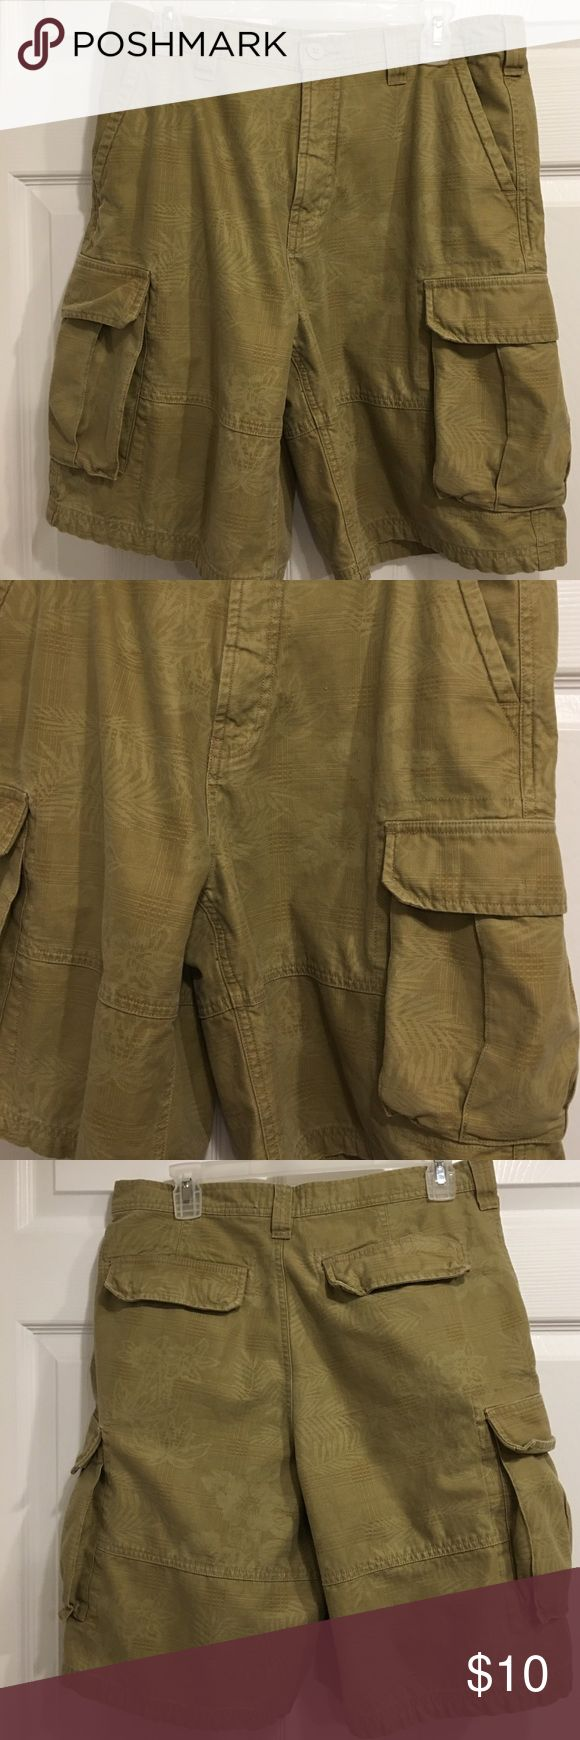 Men's Faded Glory Shorts size 32 Men's faded glory Shorts excellent condition size 42. 100% cotton lots pockets. Color is a greenish tan army color Faded Glory Shorts Cargo